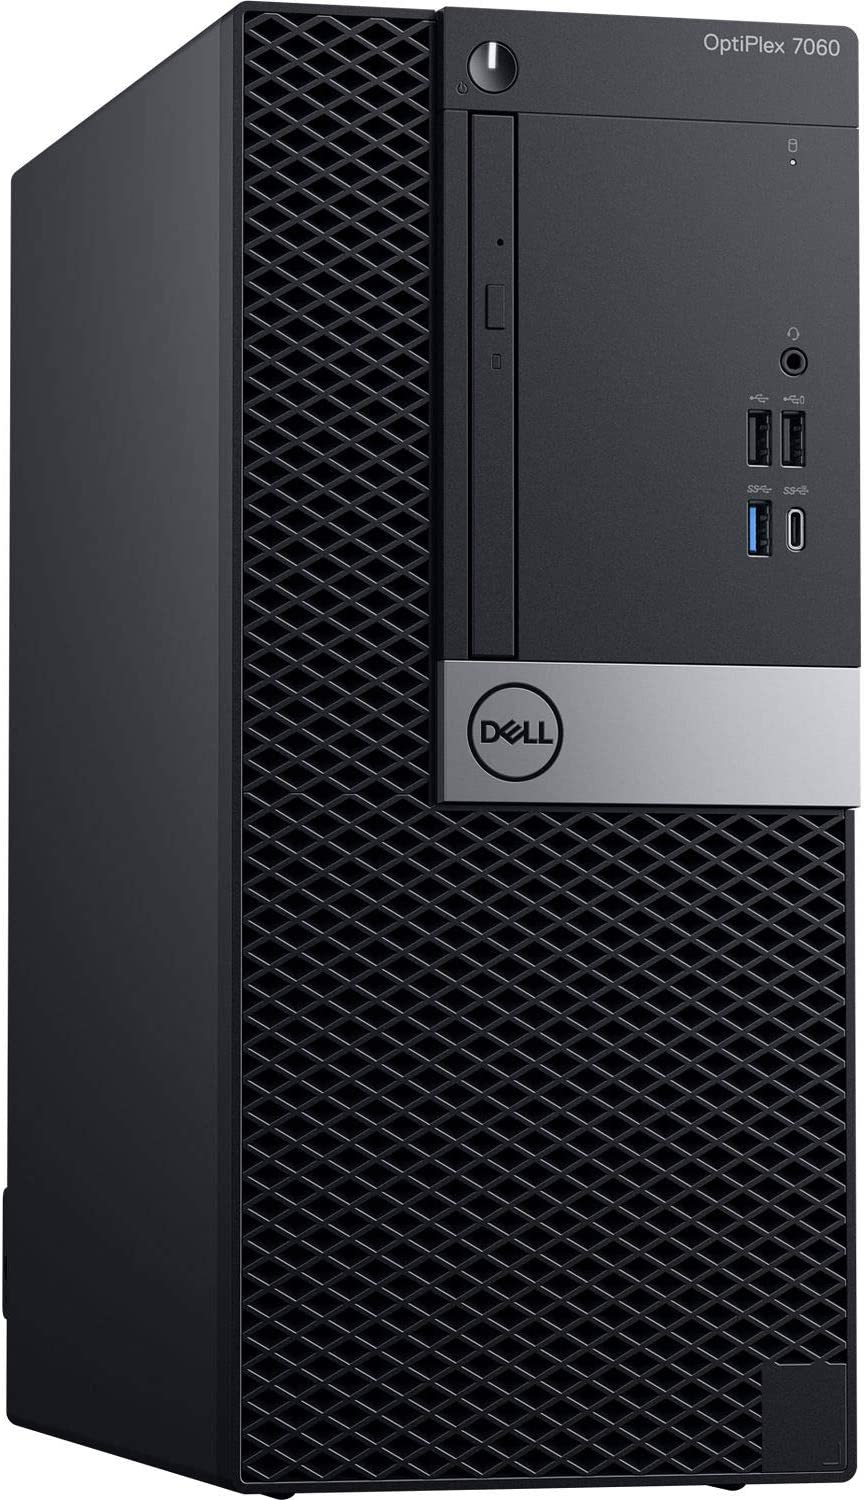 Dell Optiplex 7060 Mini Tower | Intel Quad Core i3-8300 3.7GHz | 4GB DDR4 + 16GB Optane Memory | 240GB SSD+500GB HDD | DVD | Windows 10 Pro (Renewed)